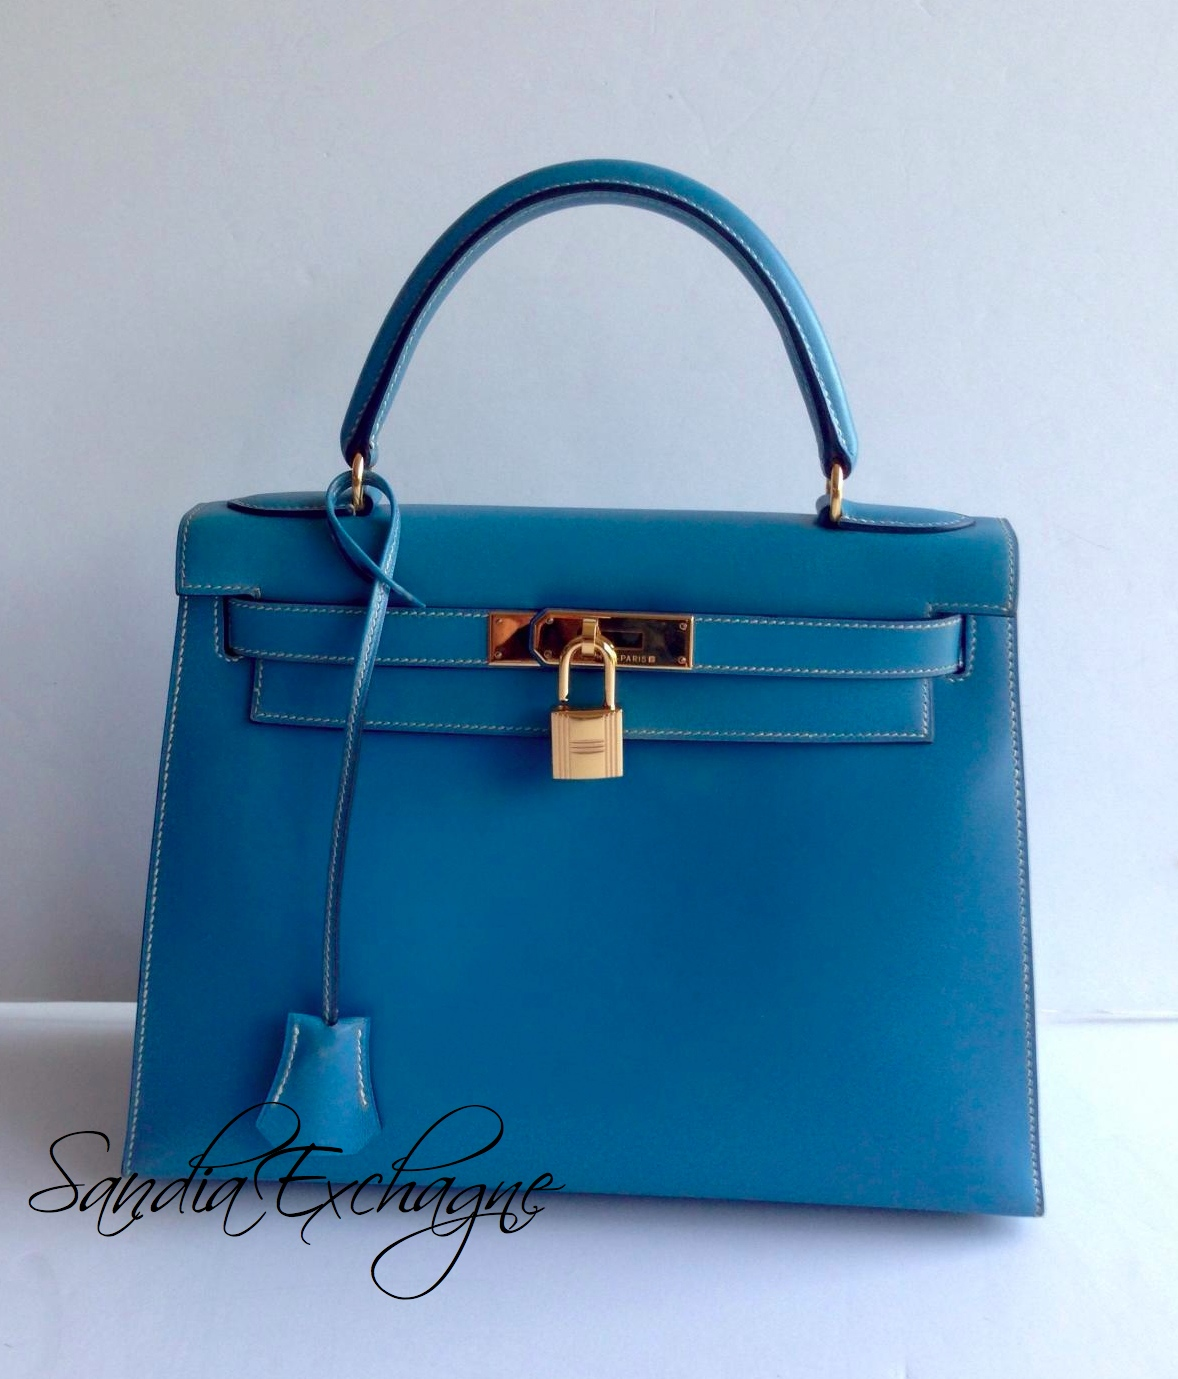 hermes birkin green ostrich - Hermes 28cm Clemence Blue Jean Kelly Bag with Palladium Hardware